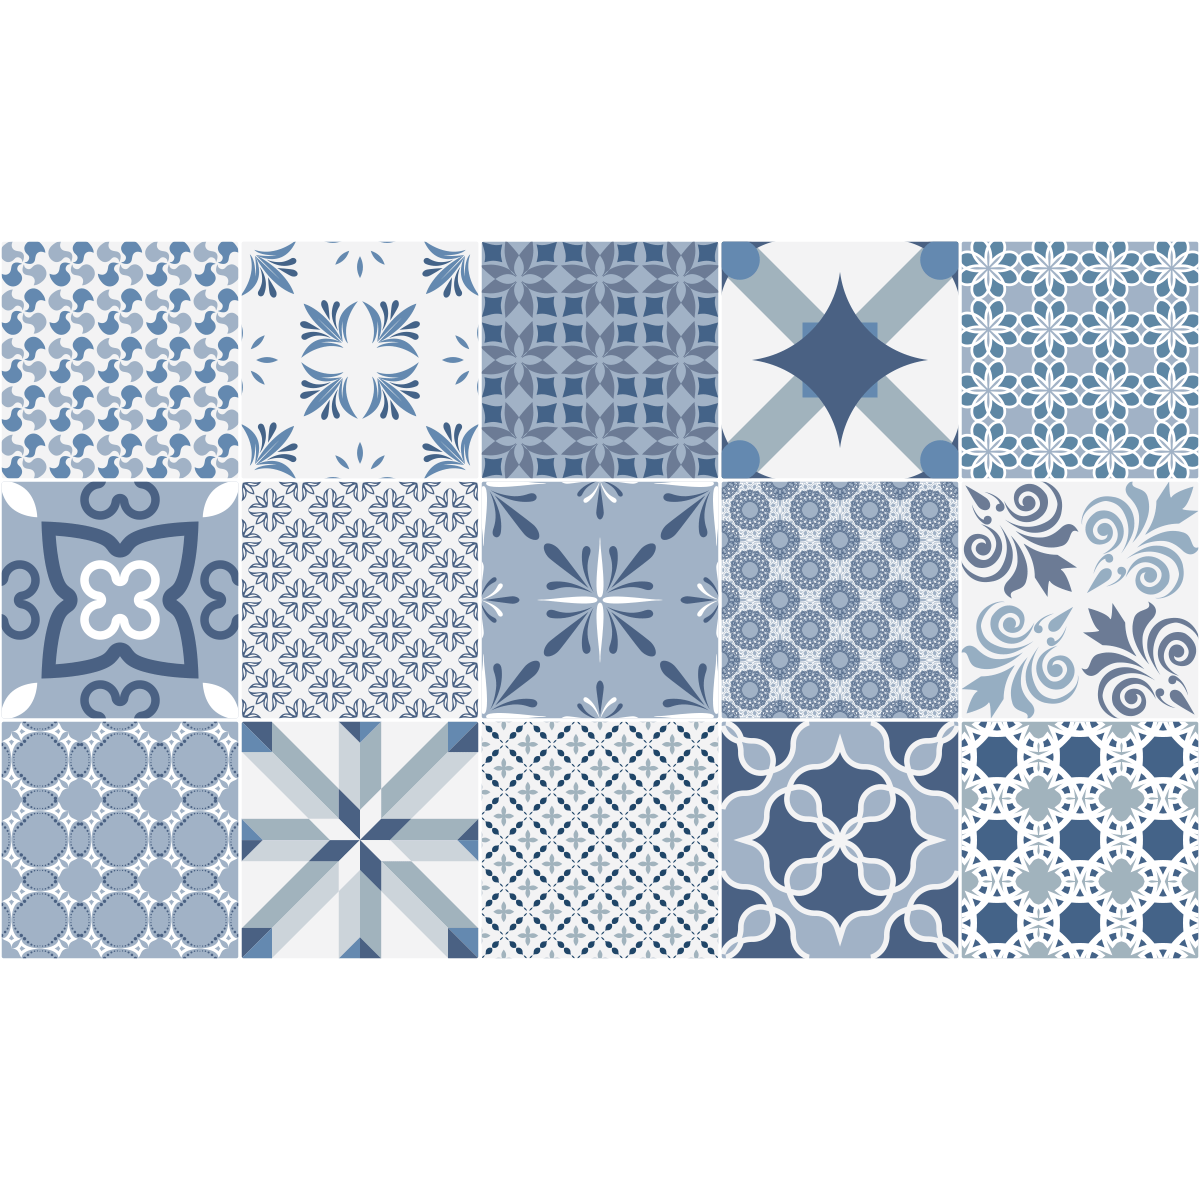 Carreau ciment bleu cementtile carreau ciment esher bleu hex with carreau ciment bleu trendy - Carreaux de ciment bleu ...